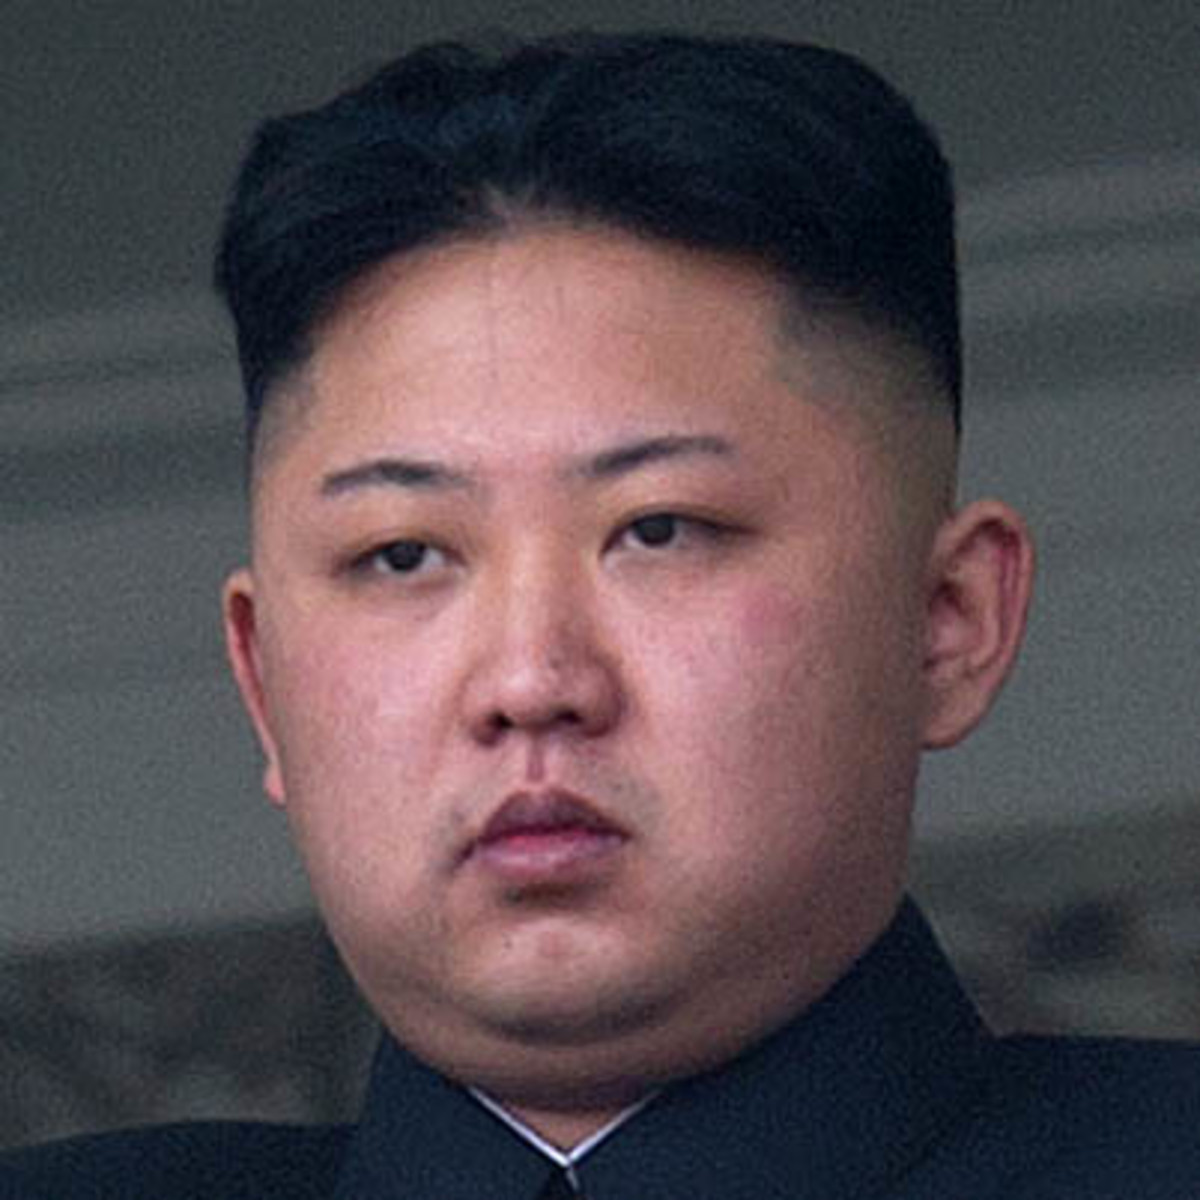 Kim Jong-un - Wife, Father & Facts - Biography